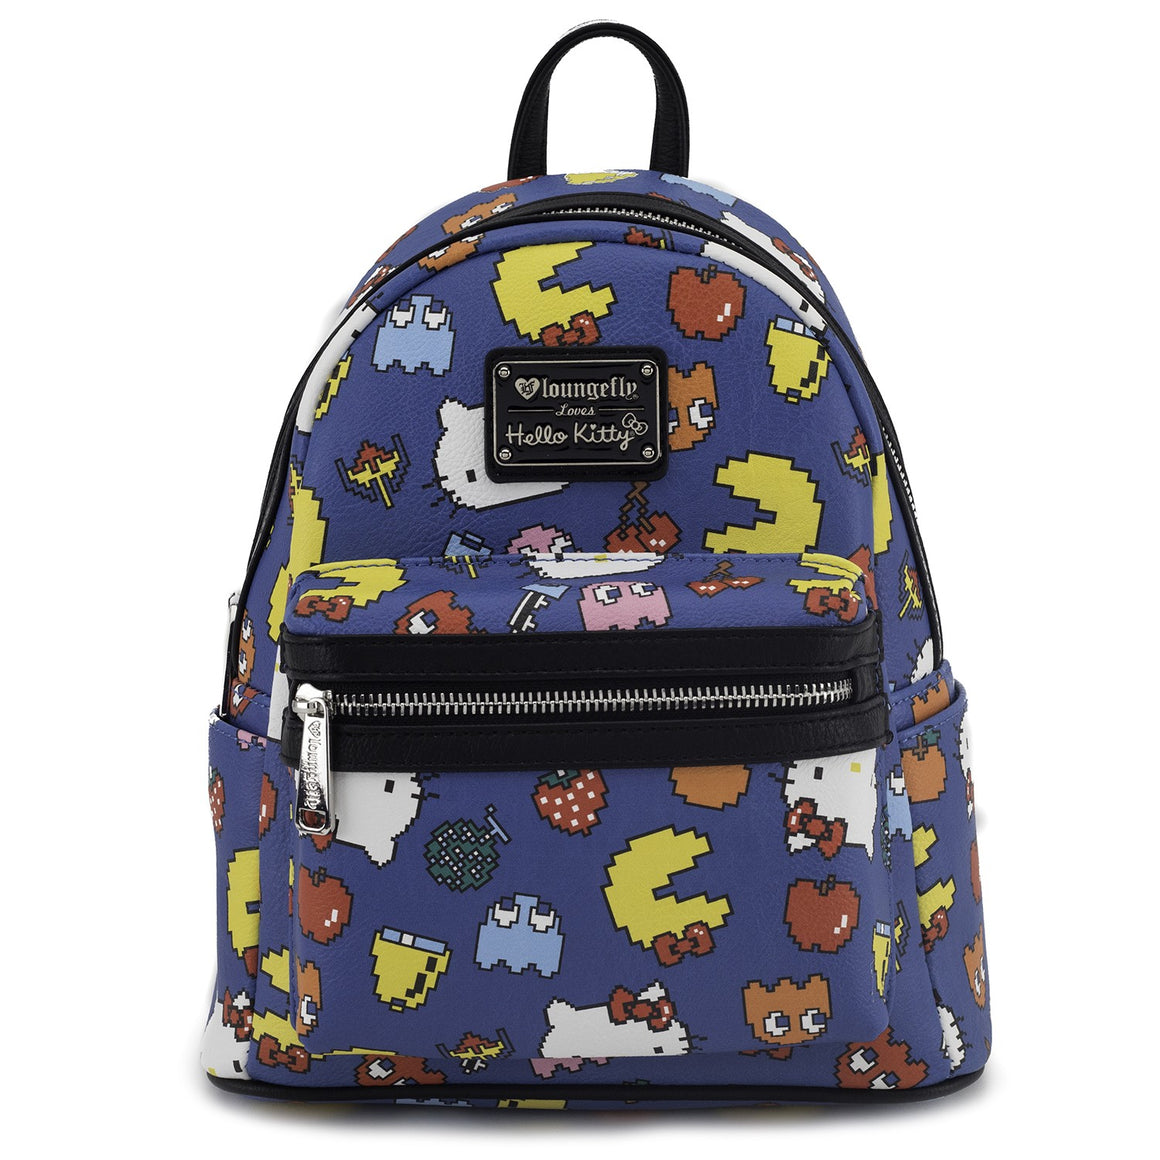 Loungefly x Hello Kitty x Pac Man Mini Faux Leather Backpack